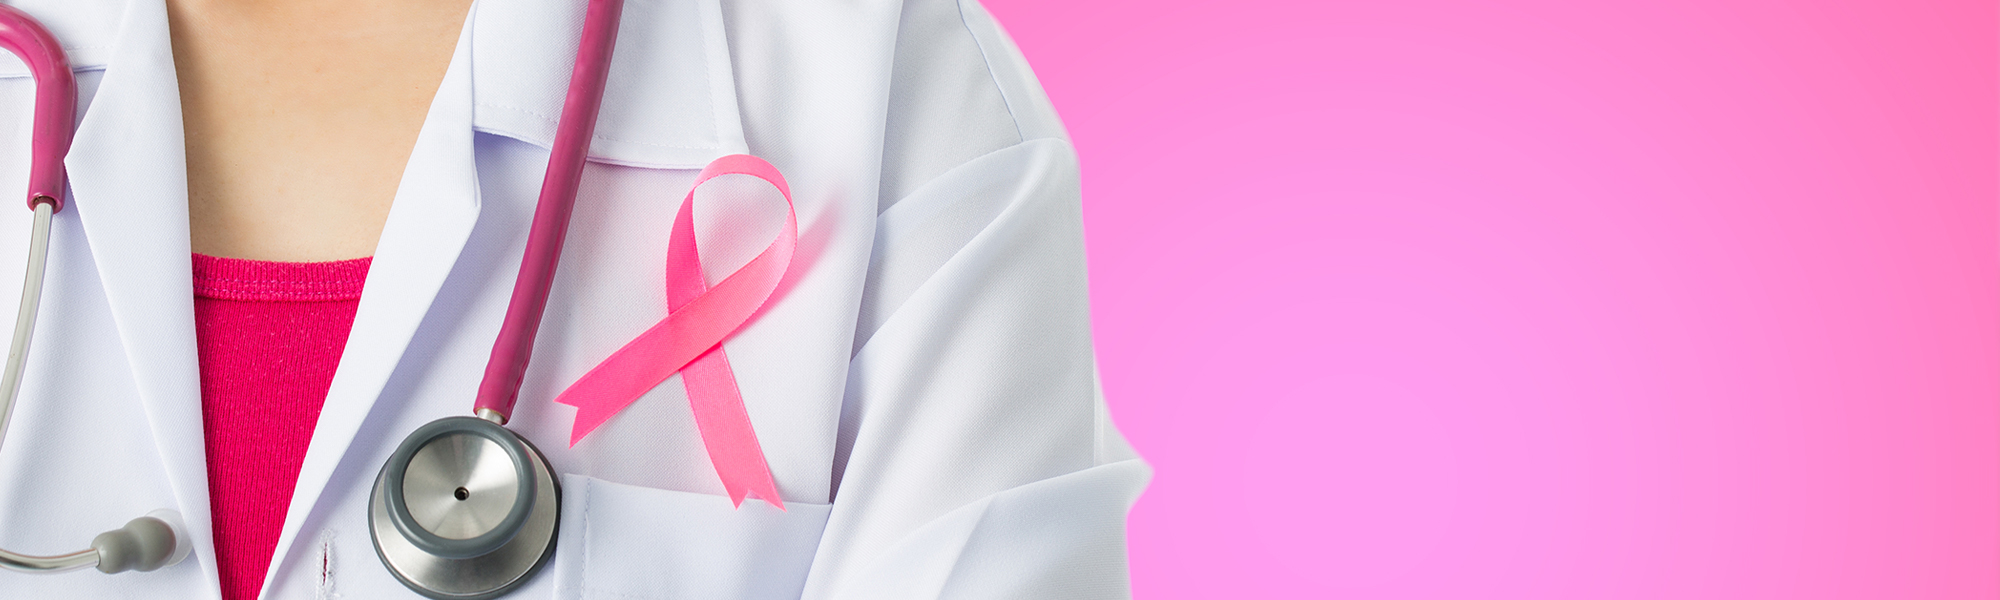 Community 3D Mammography Clinic - October 17